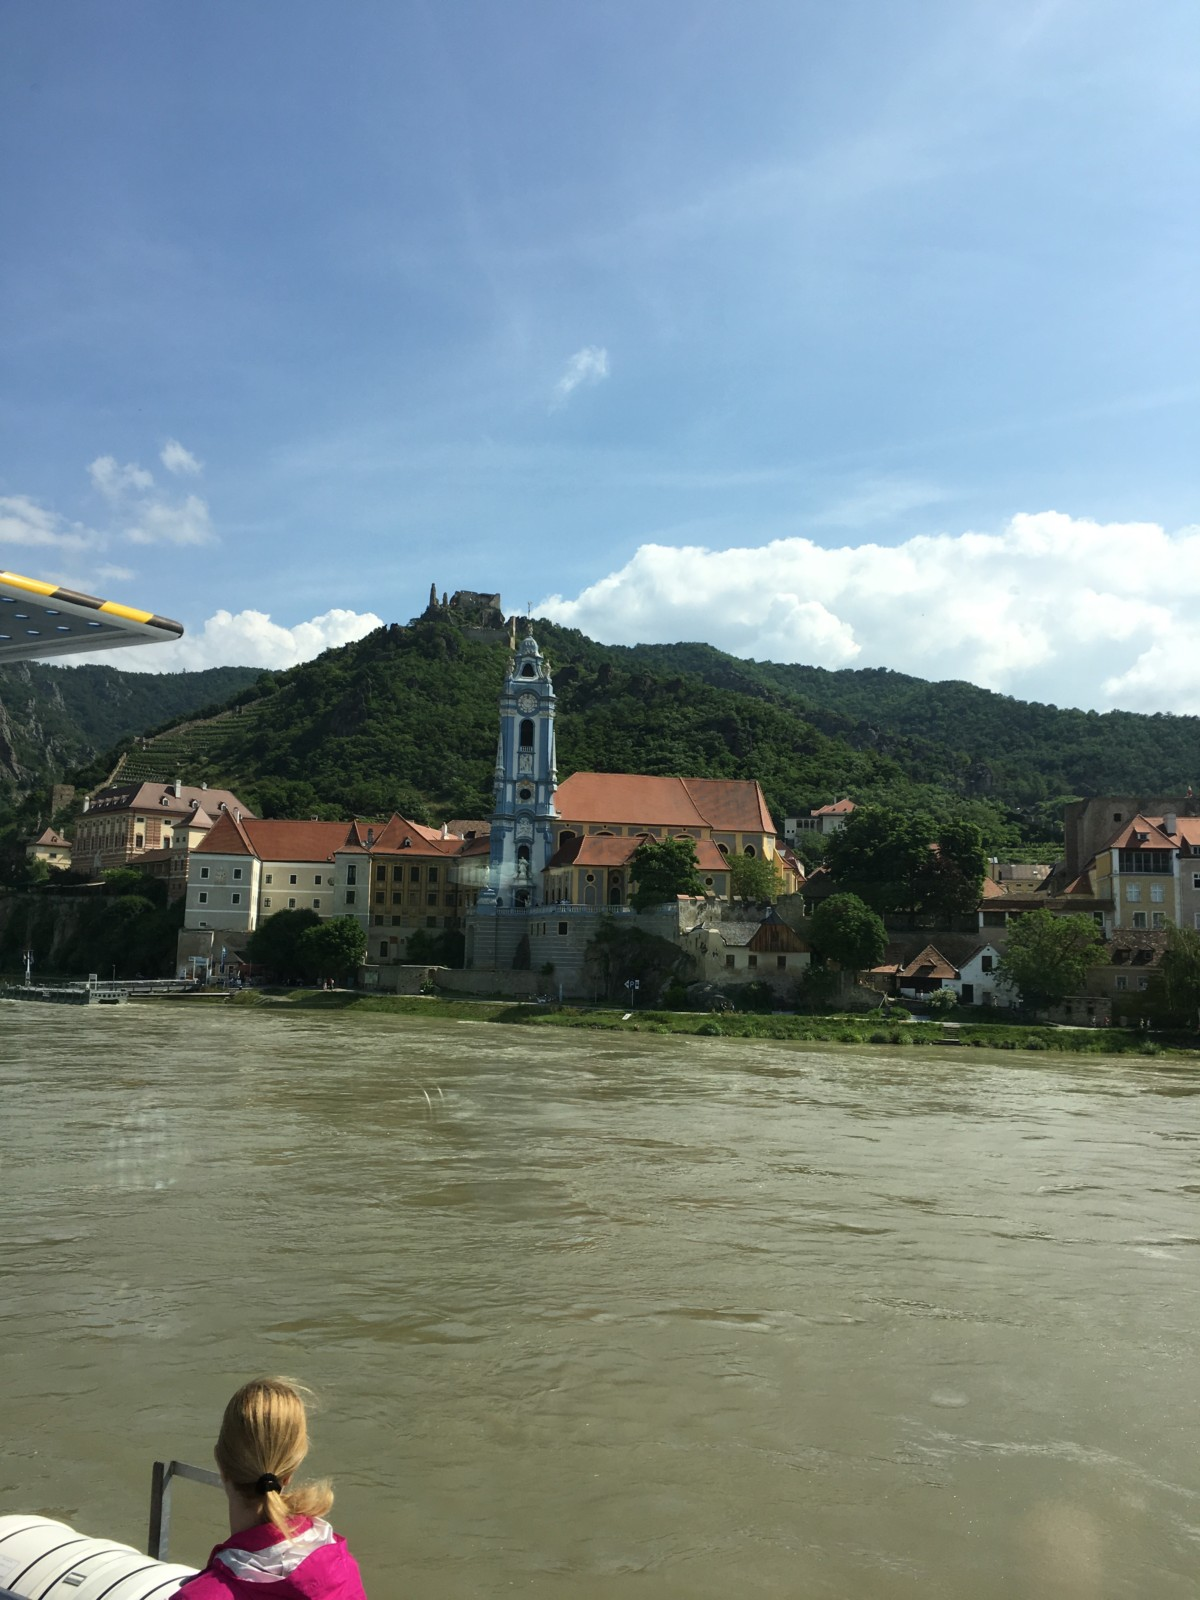 town of Duerrnstein with church